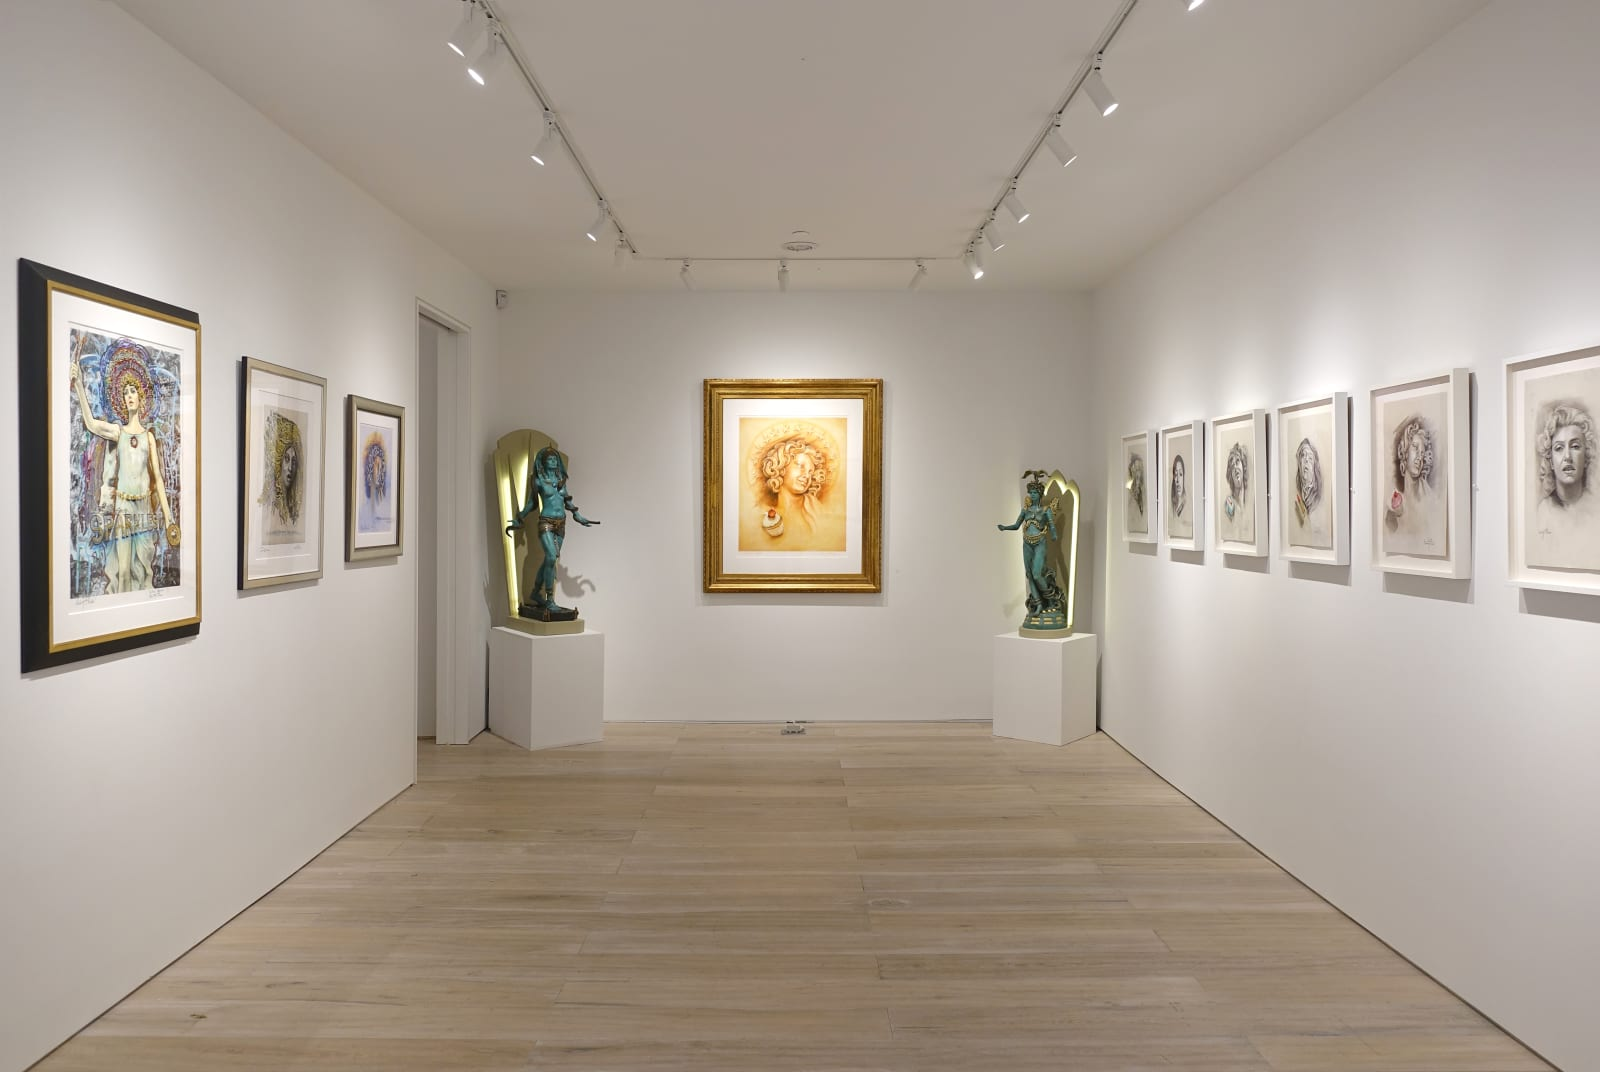 Installation view: Audrey Flack: Master Drawings from Crivelli to Pollock